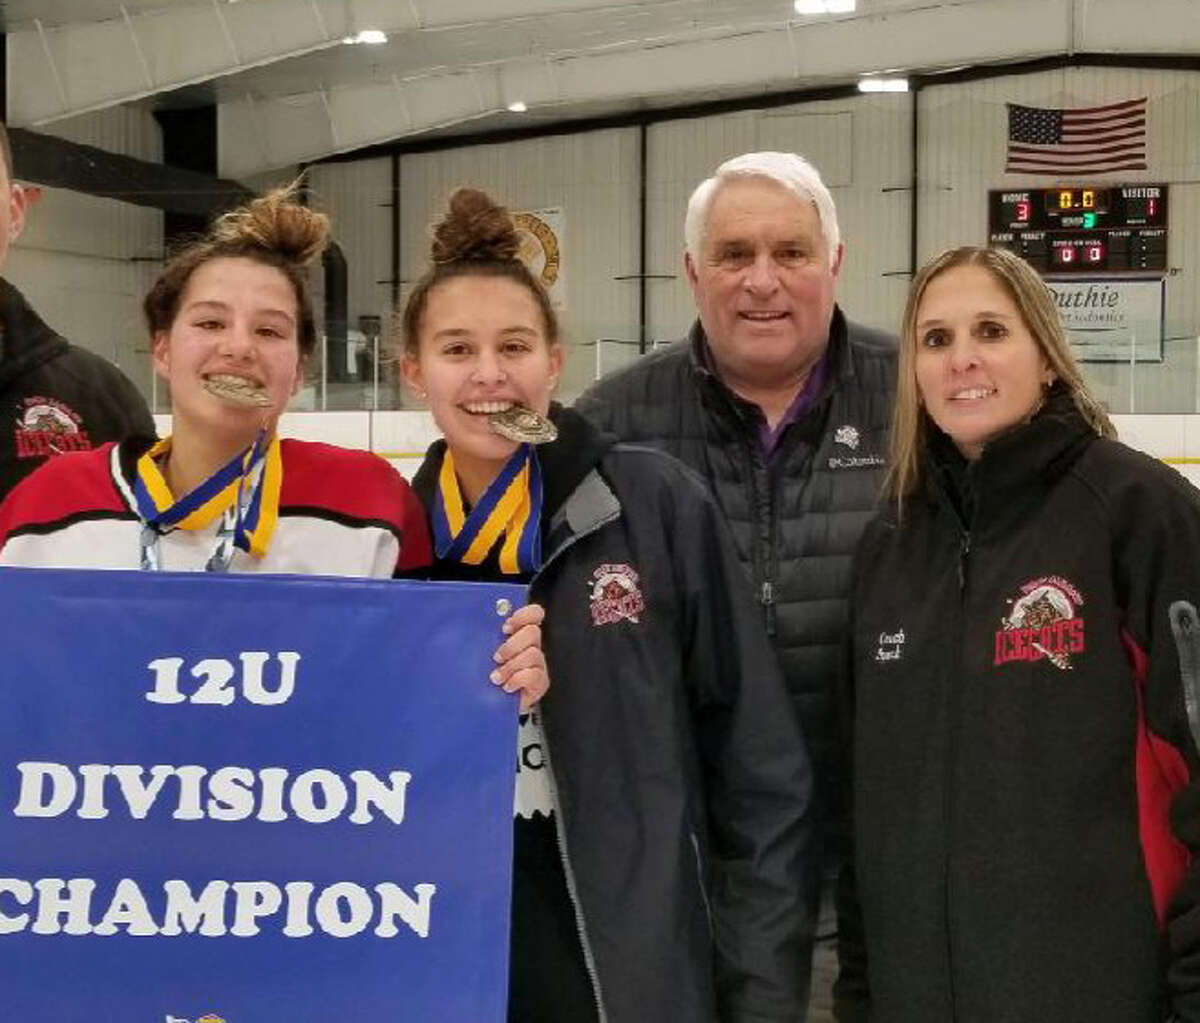 Caitlyn, Emily and Jennifer Speck with the girls' grandfather Richard Scammell, who is the founder and longtime coach of the Troy Albany Ice Cats girls hockey program. (Provided)